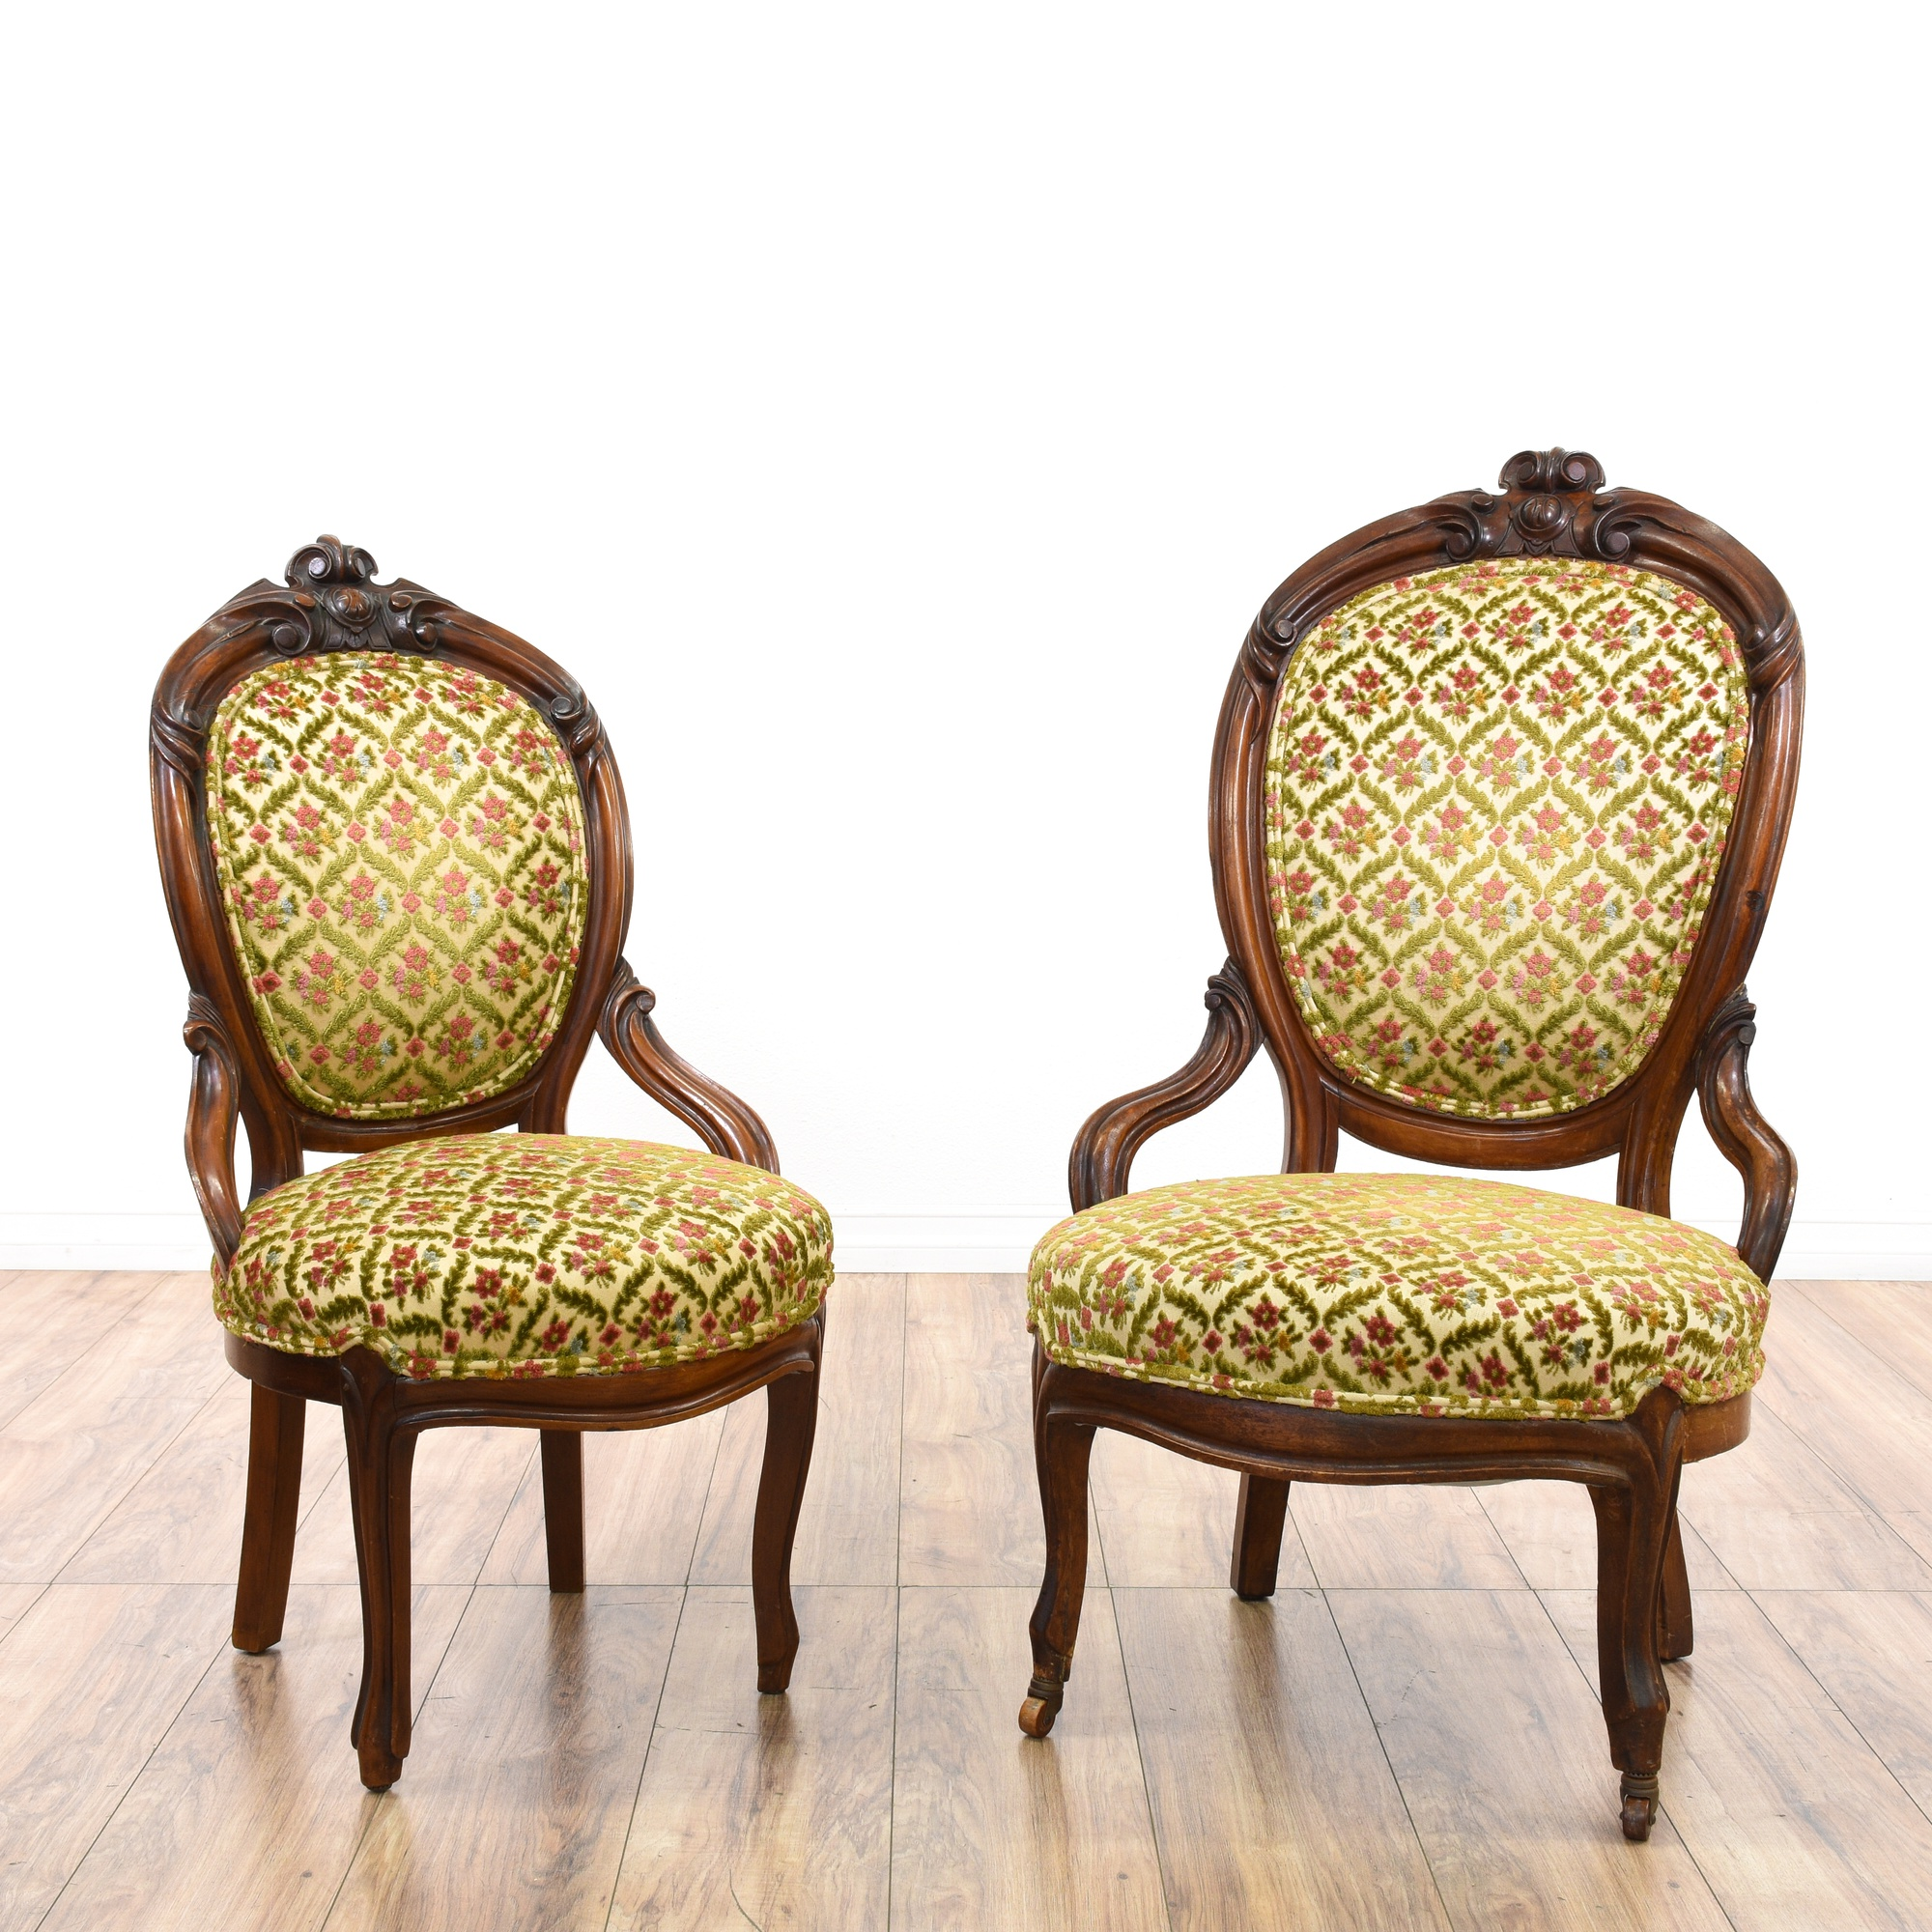 Pair of Victorian Upholstered Chairs